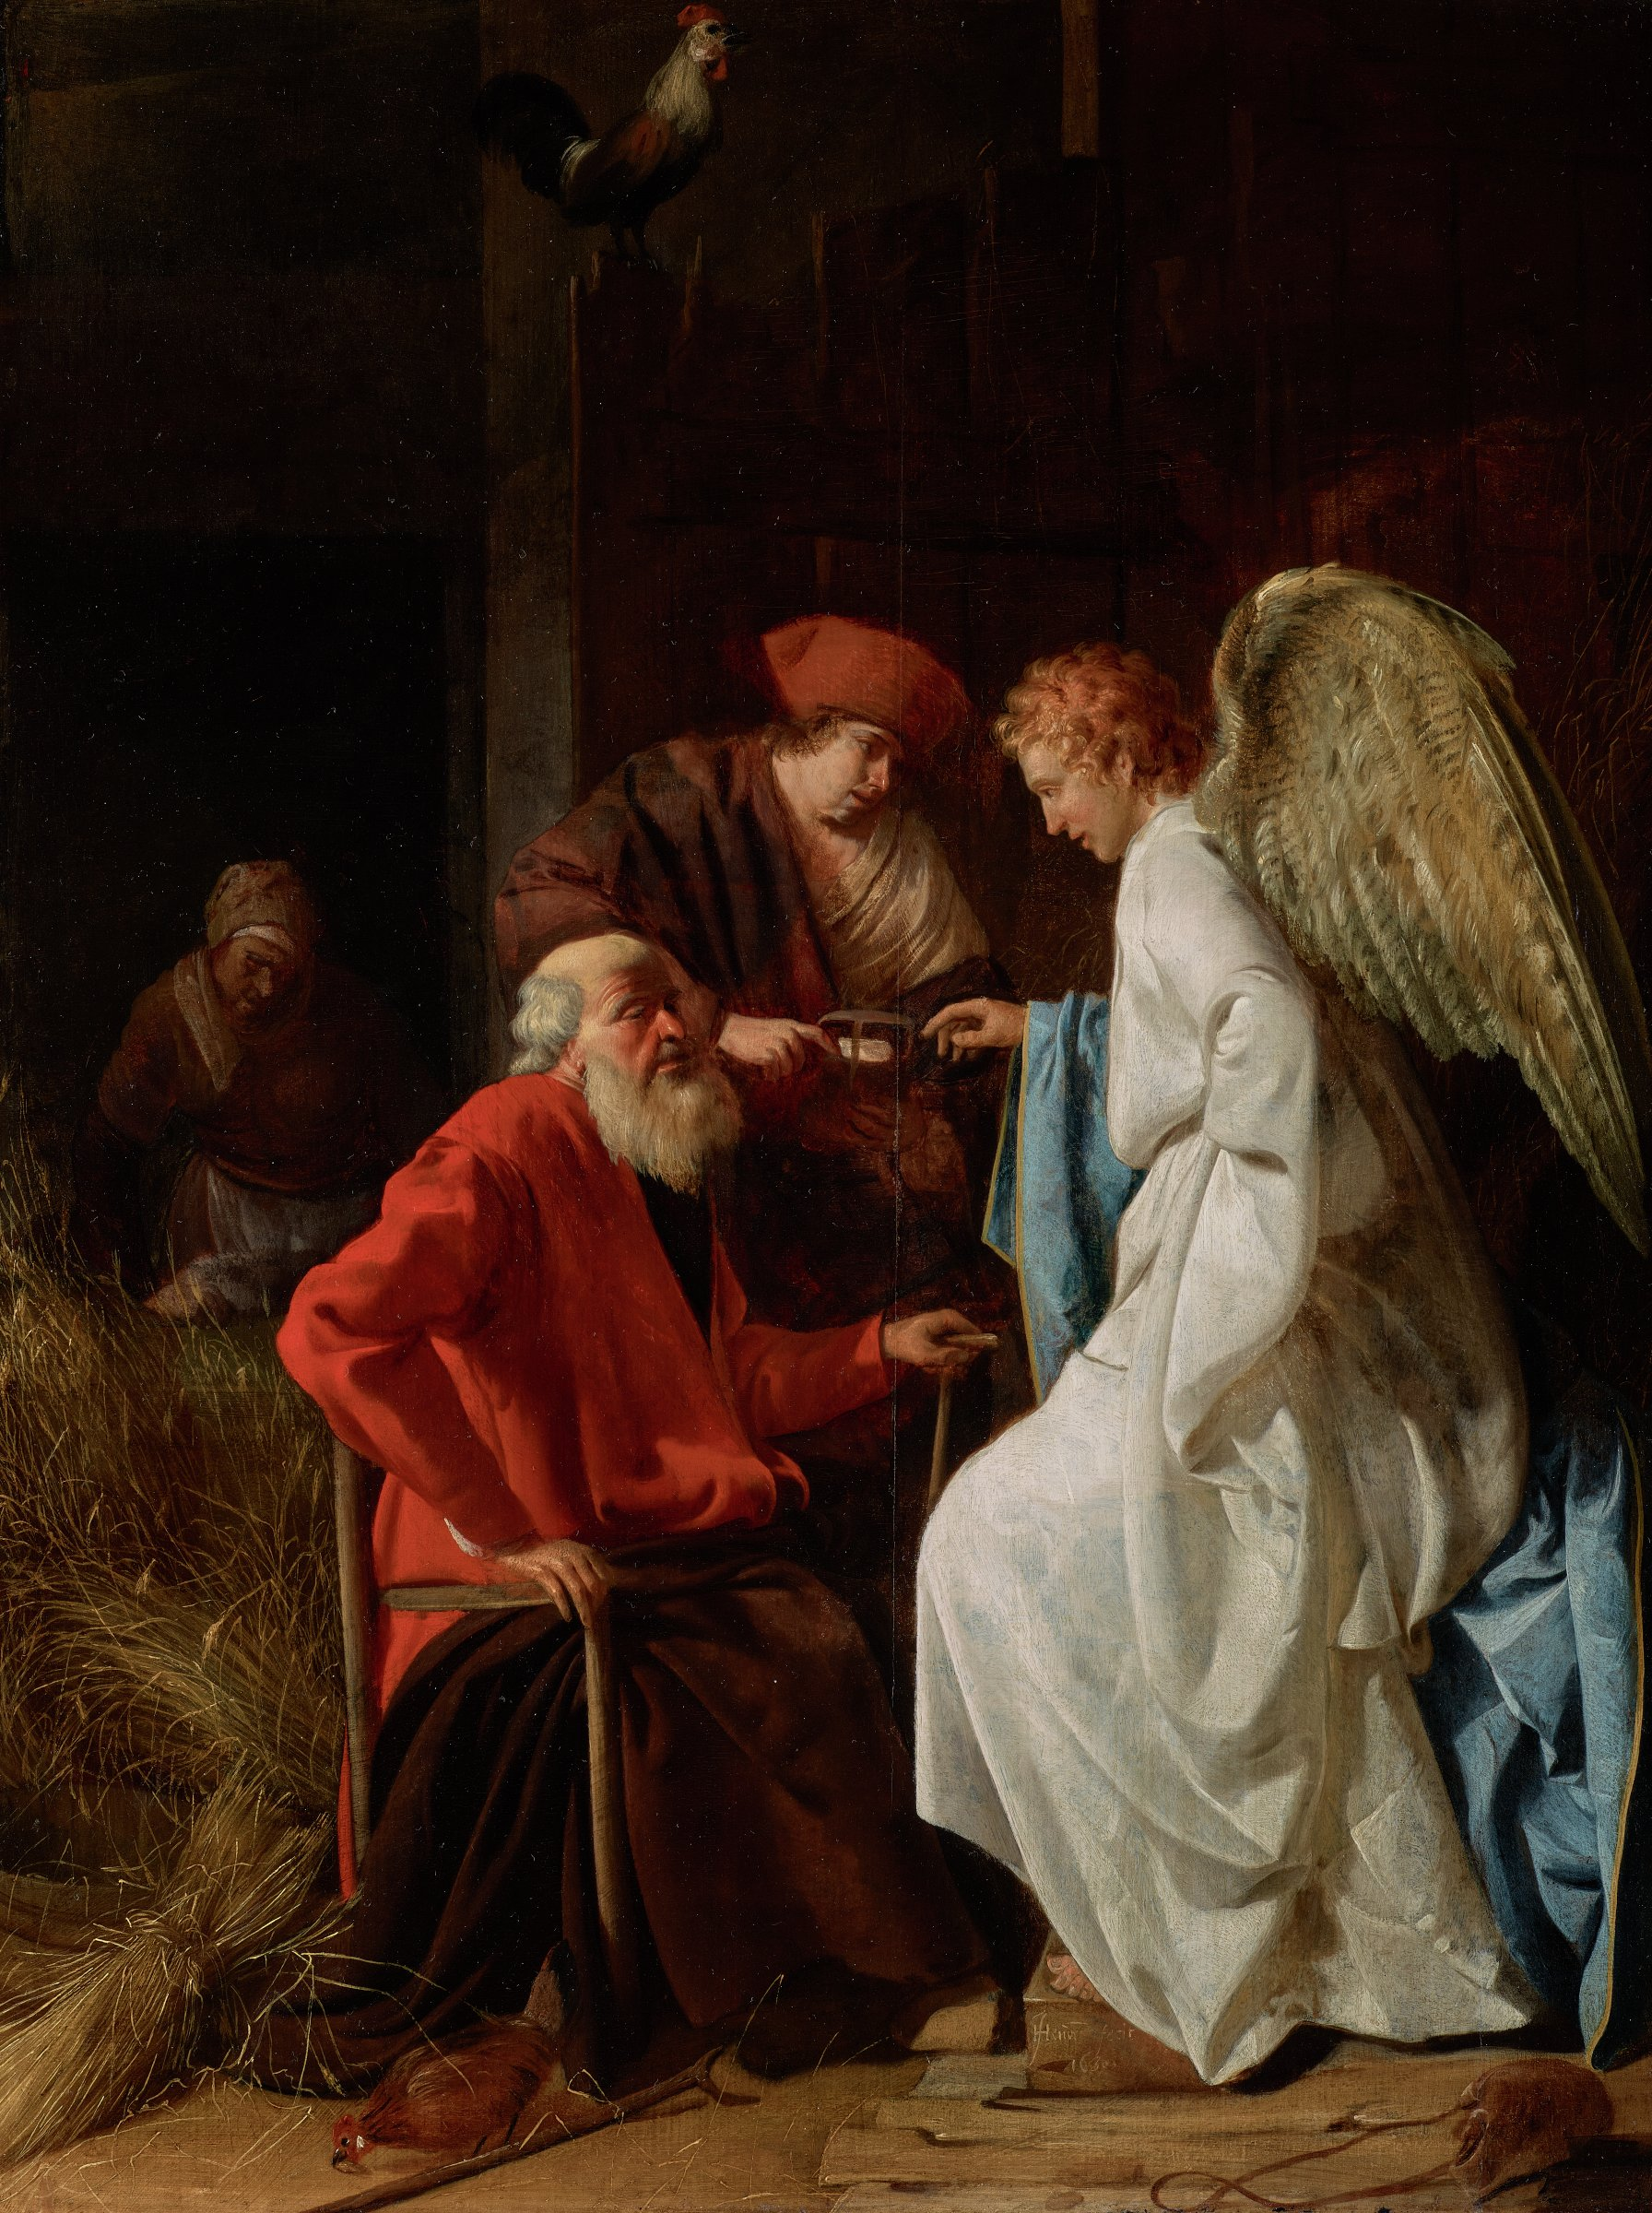 The elderly Tobit, dressed in a red cloak, is seated just left of center. The archangel Raphael, in a white robe and blue cloak trimmed in gold, stands before him. The angel reaches his right hand toward the medicine held by Tobias, who stands behind his father, Tobit. In the left background, a woman bends forward carrying an object, probably the fish from which the medicine was made. The scene takes place in a dark and rustic barn, complete with a chicken at the feet of Tobit and a rooster atop the slightly ajar barn door. The edge of the barn door is on a direct vertical with one of the legs of Tobit's chair. In the lower right corner lies a moneybag.